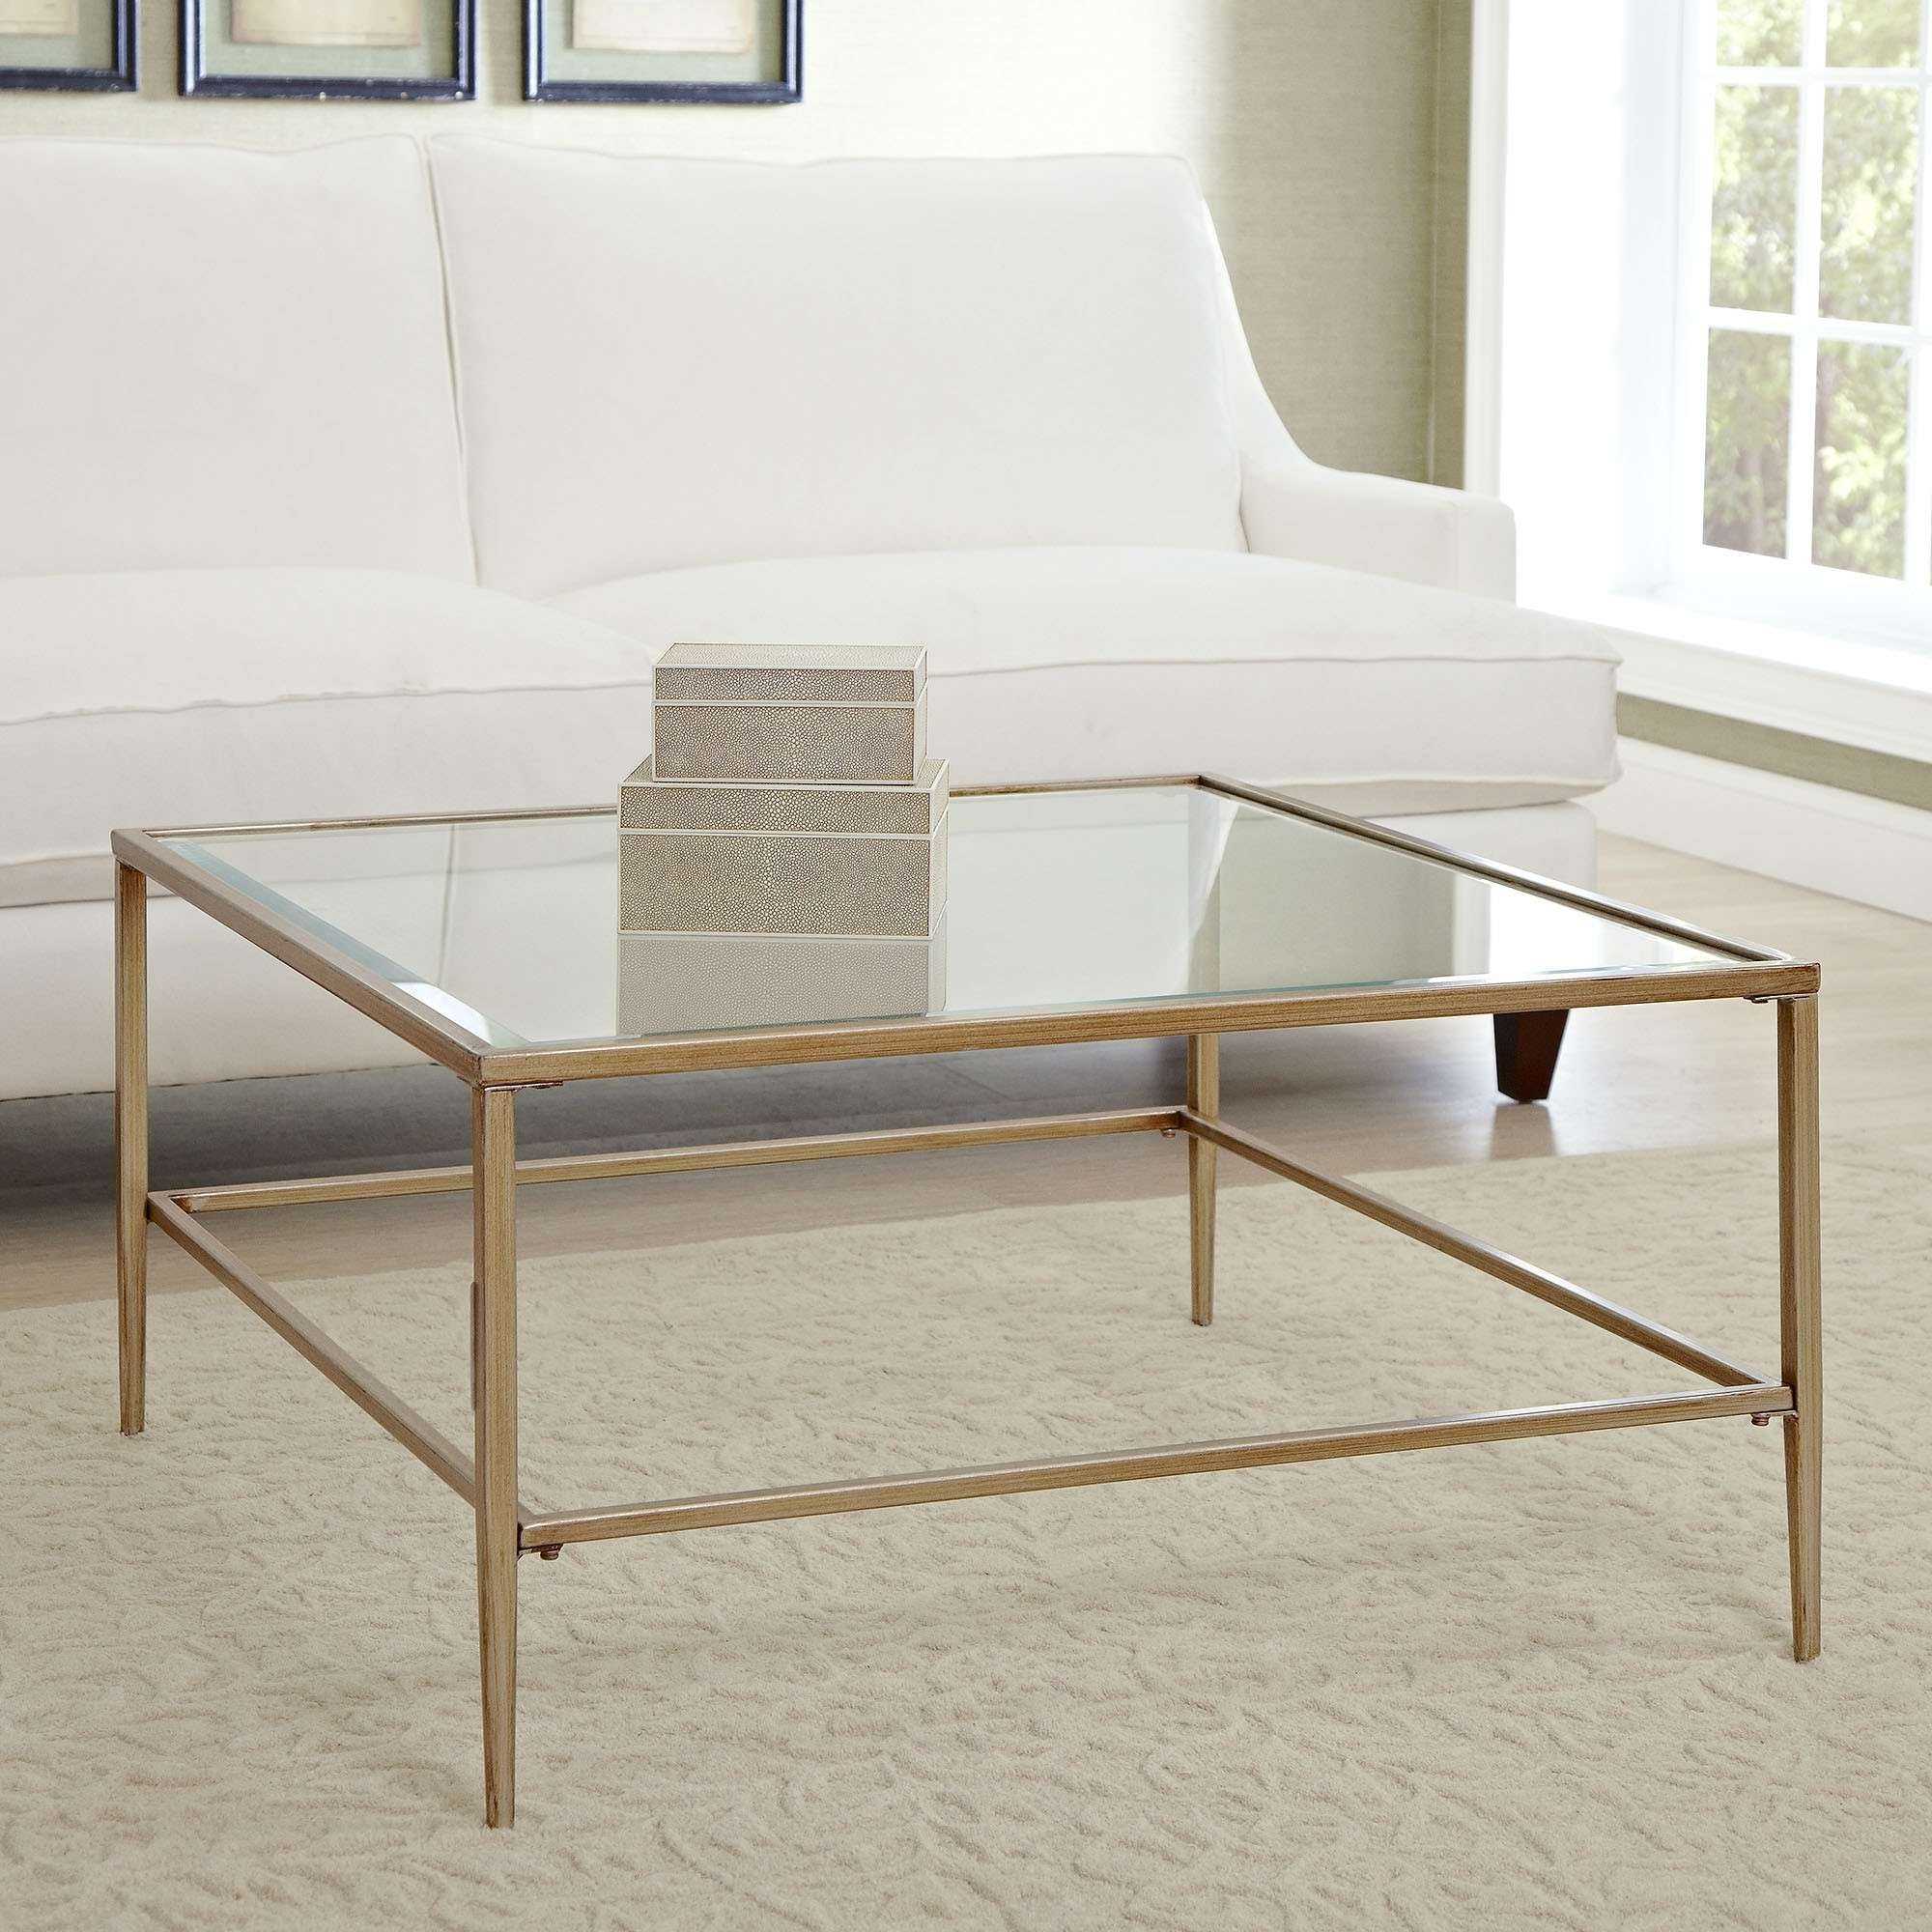 Current Wayfair Coffee Tables With Coffee Table : Wayfair Coffee Tables Table Marvelous White Wash (View 16 of 20)